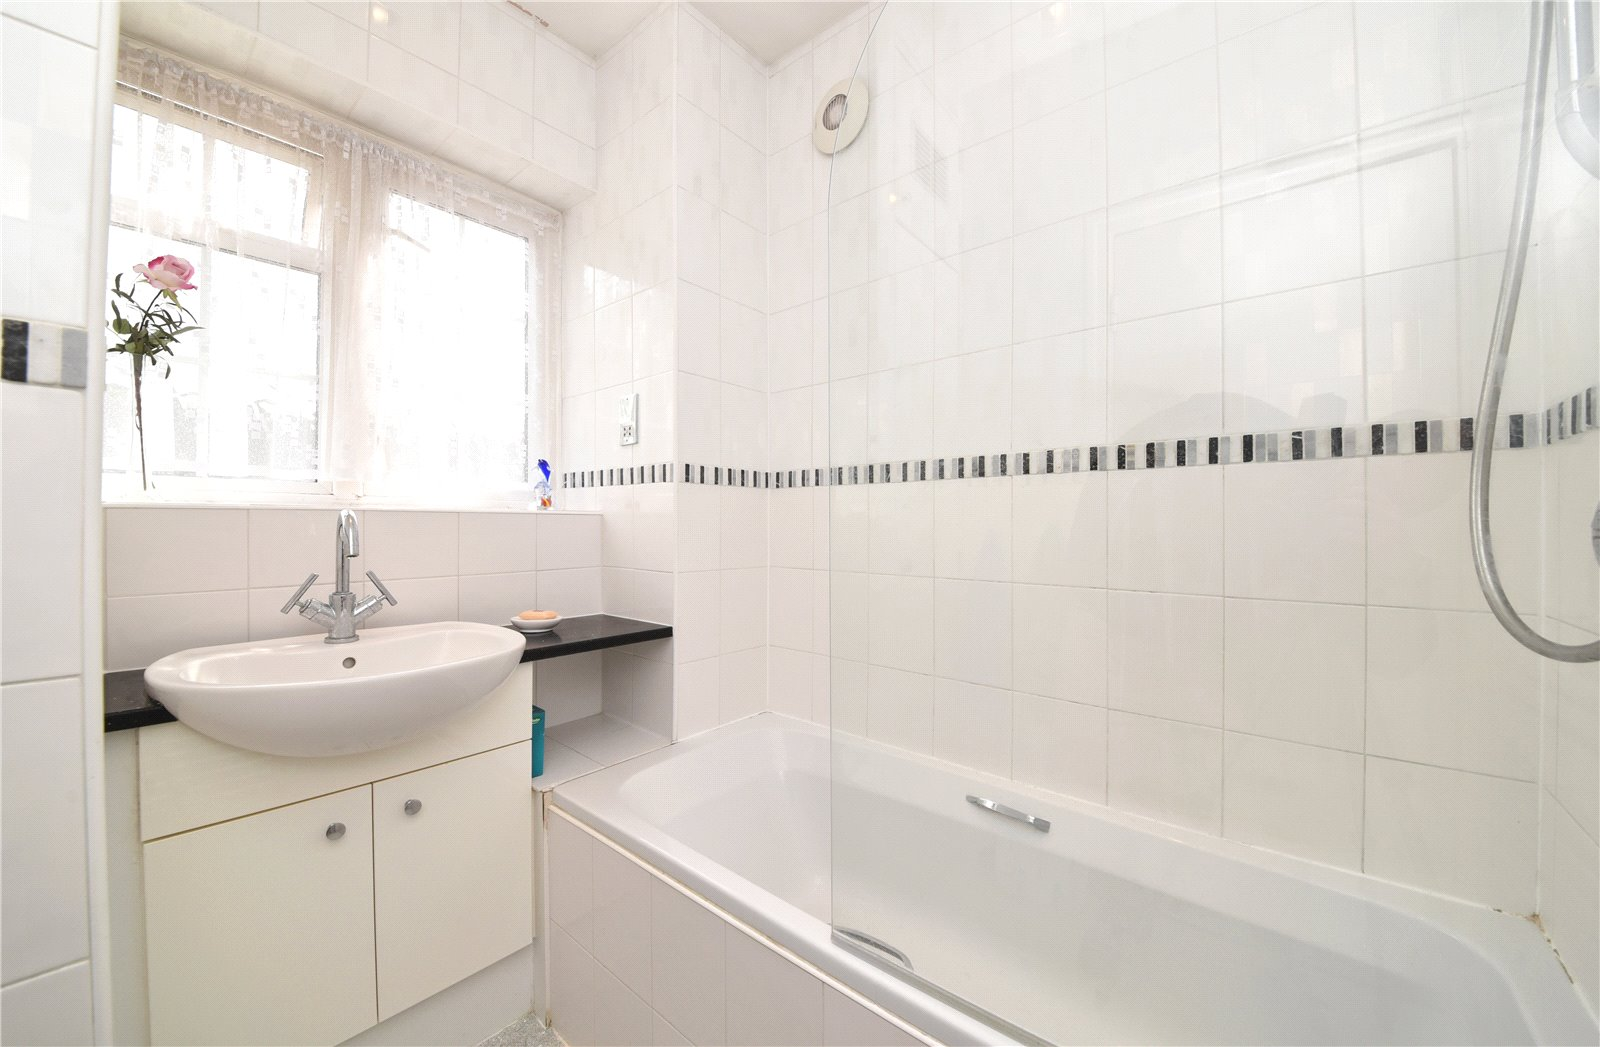 3 bed house for sale in London, N12 9ND  - Property Image 4